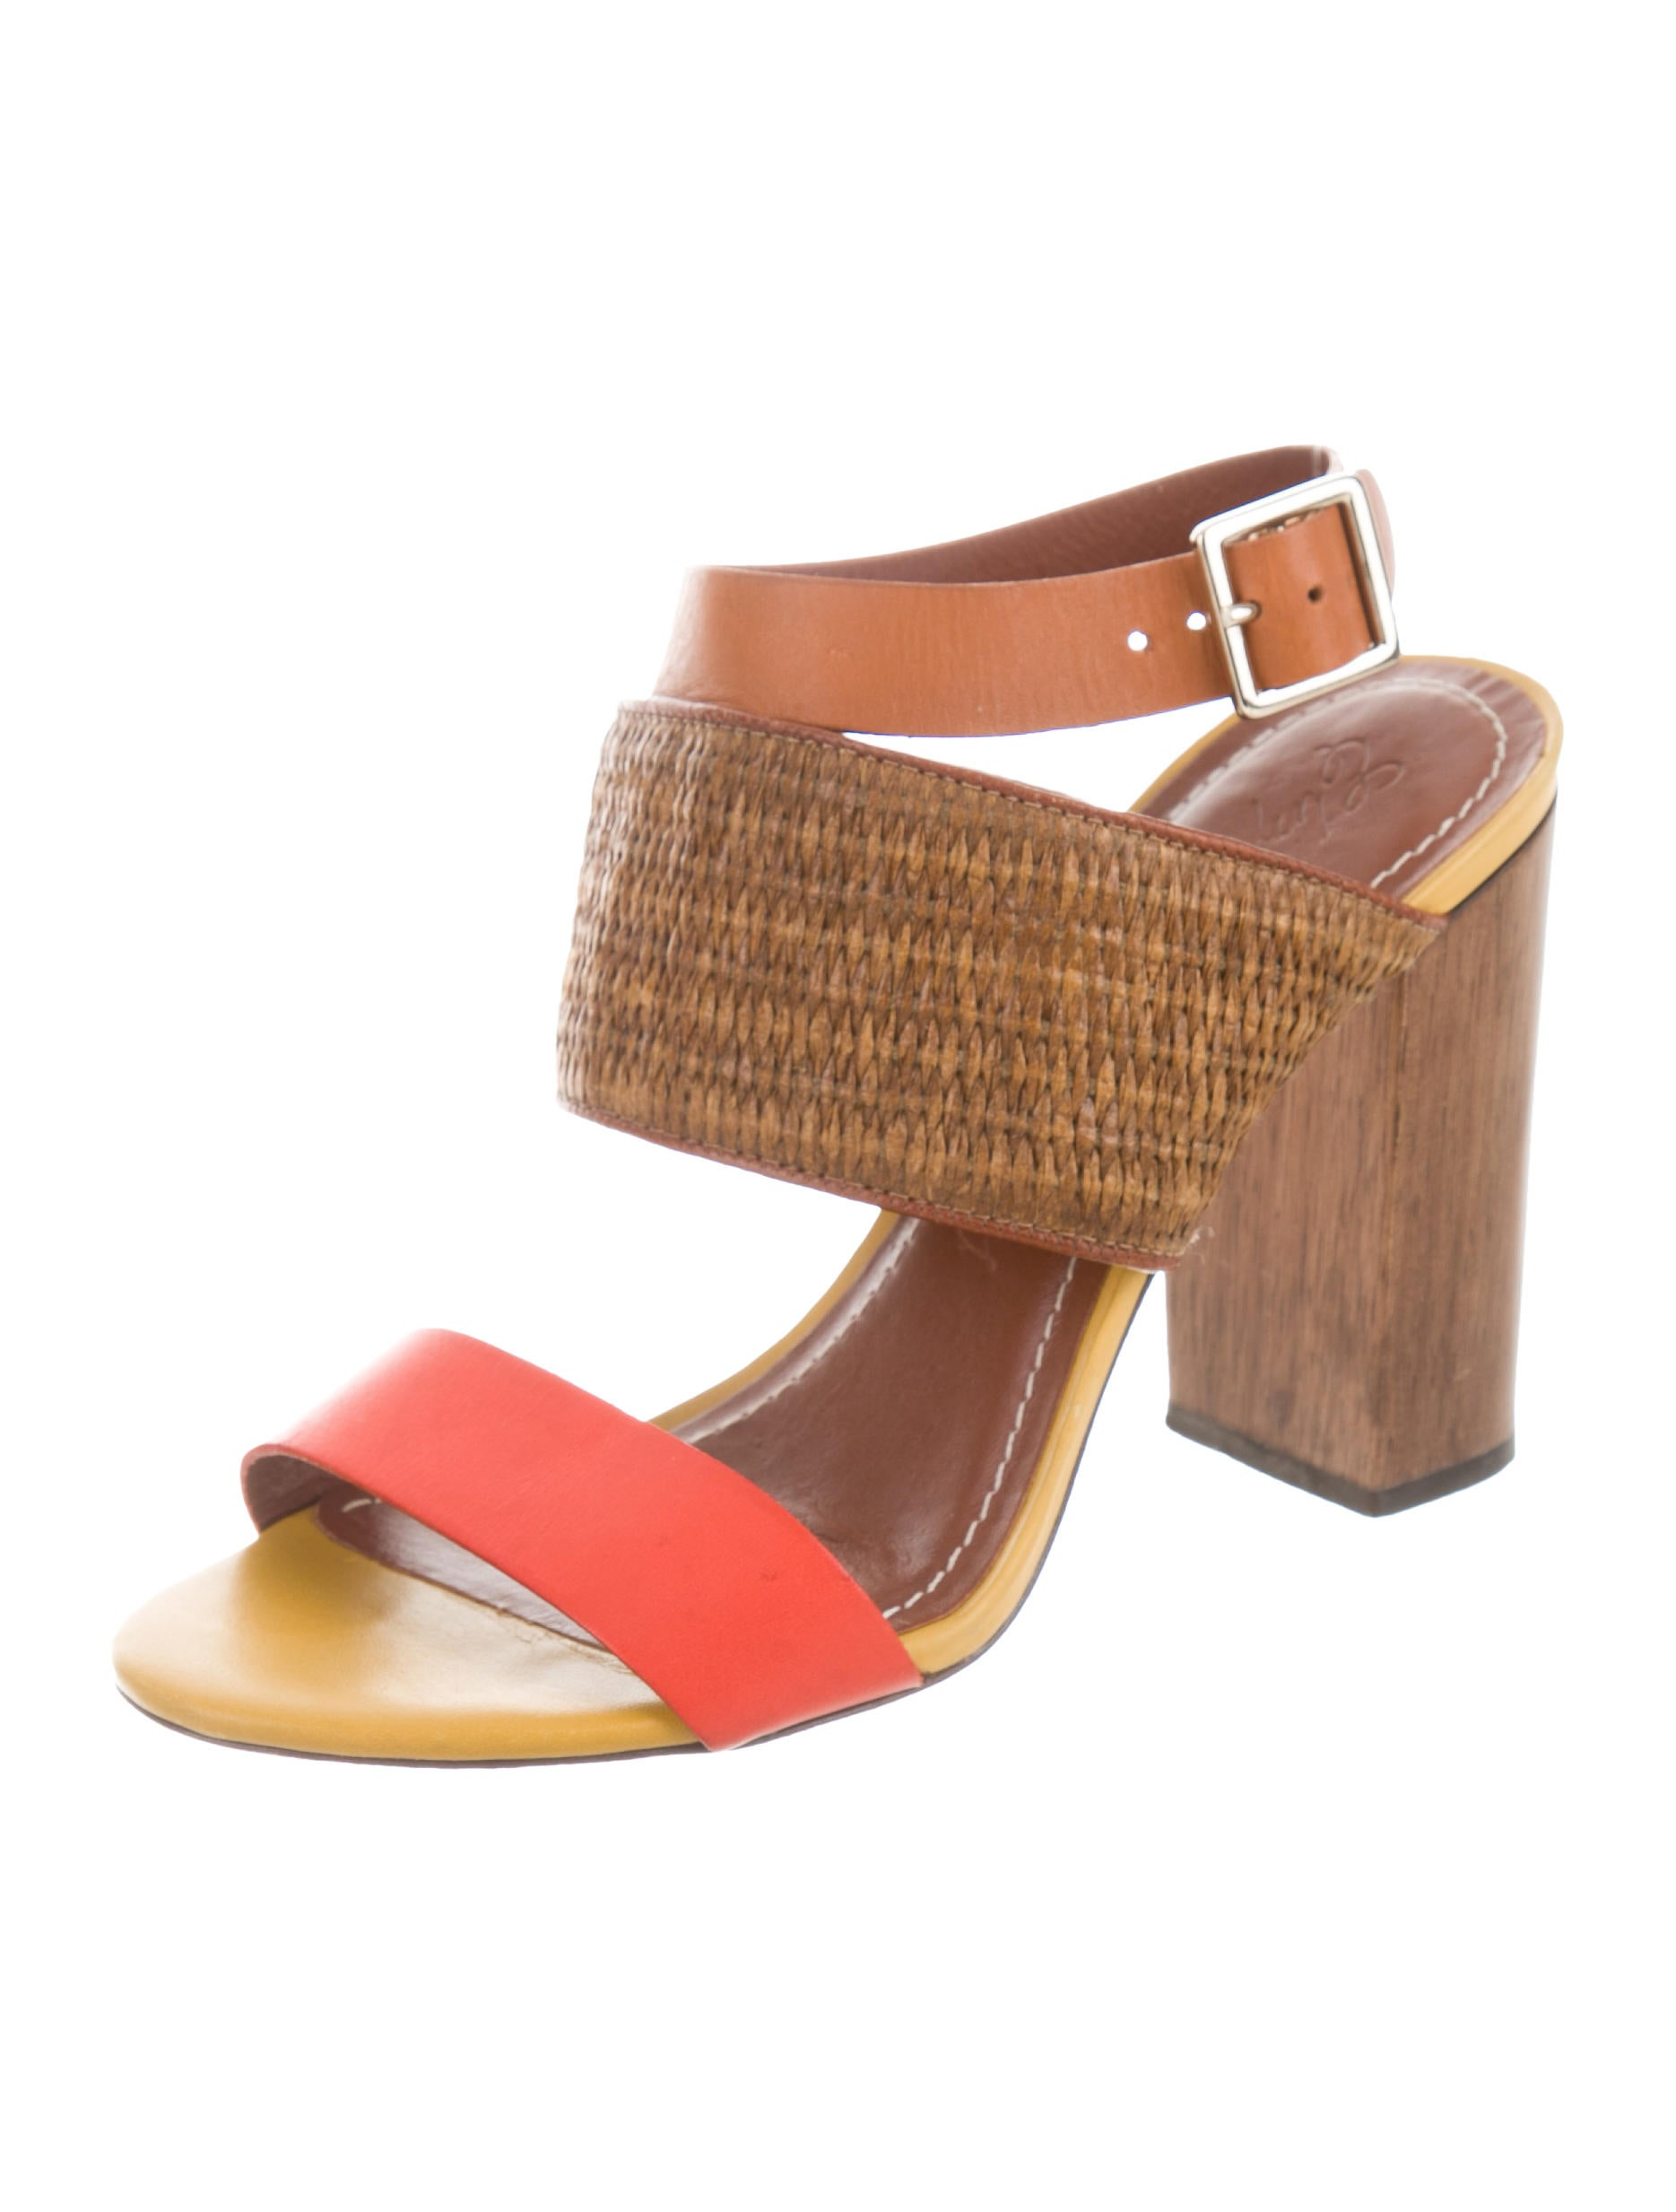 discounts sale online Elizabeth and James Wicker-Paneled Leather Sandals best store to get online cheap sale countdown package visa payment release dates CnVLOuxrv